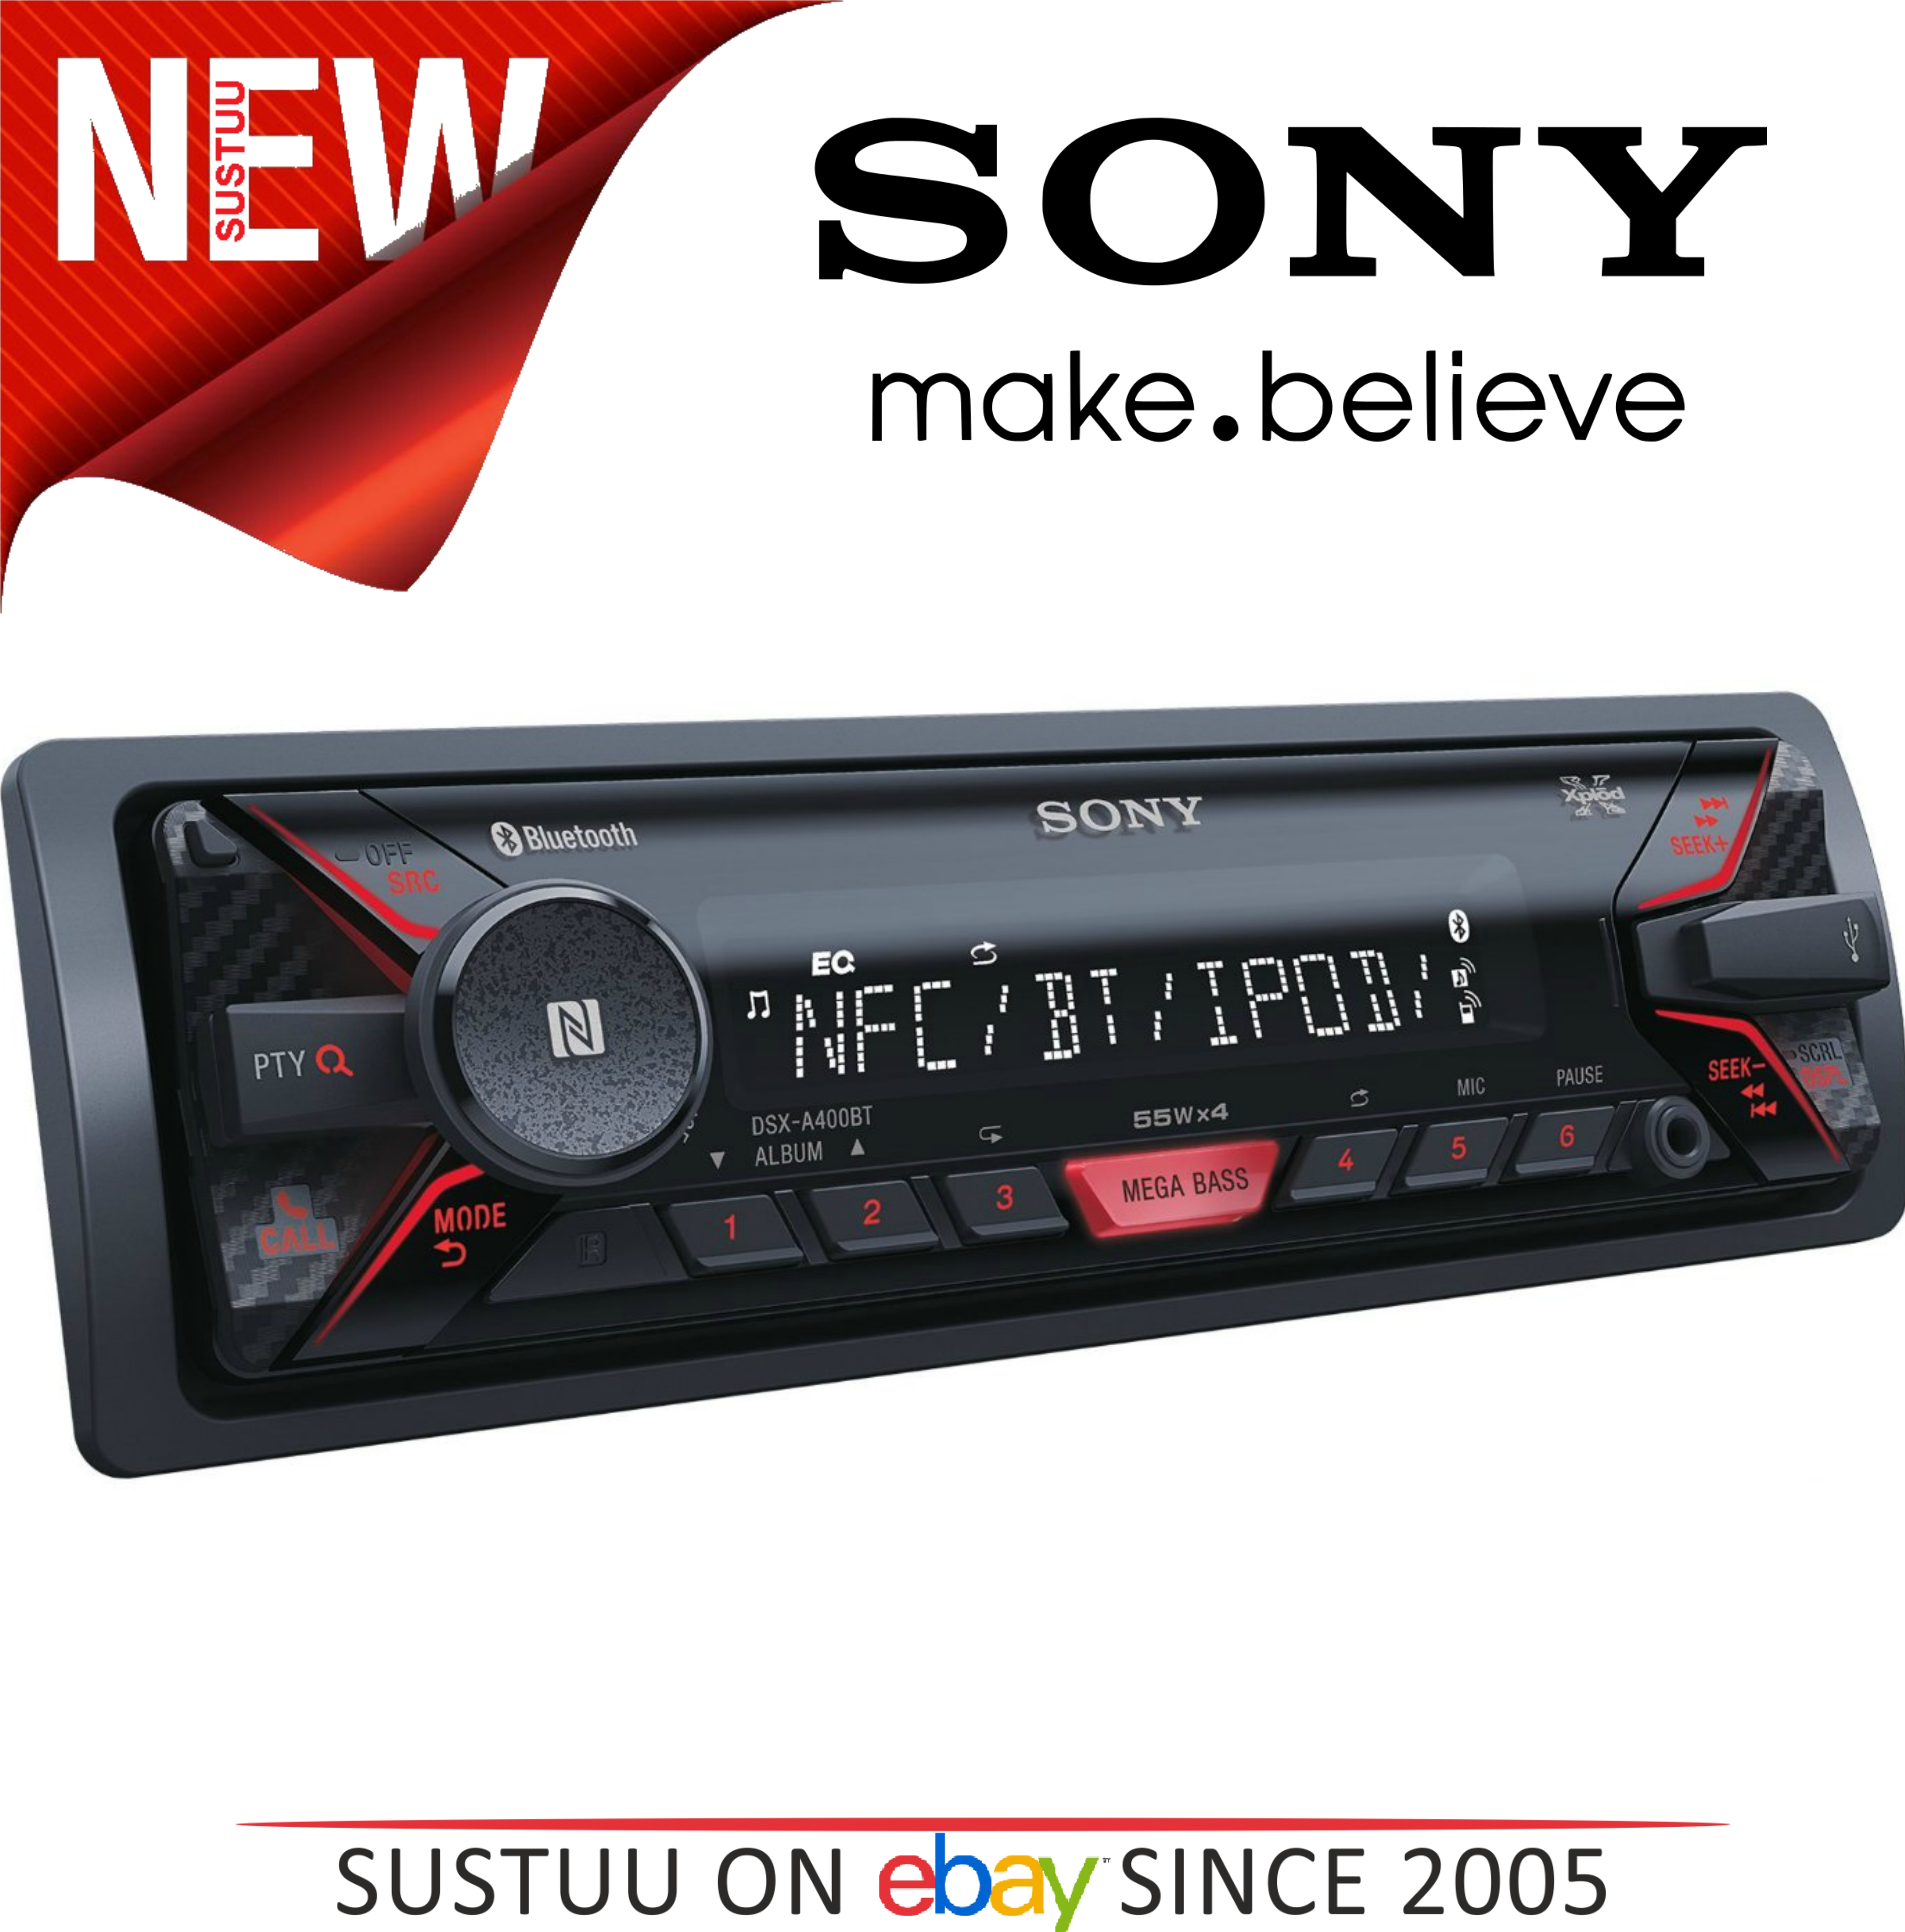 Sony DSX-A400BT Mechless In Car Stereo